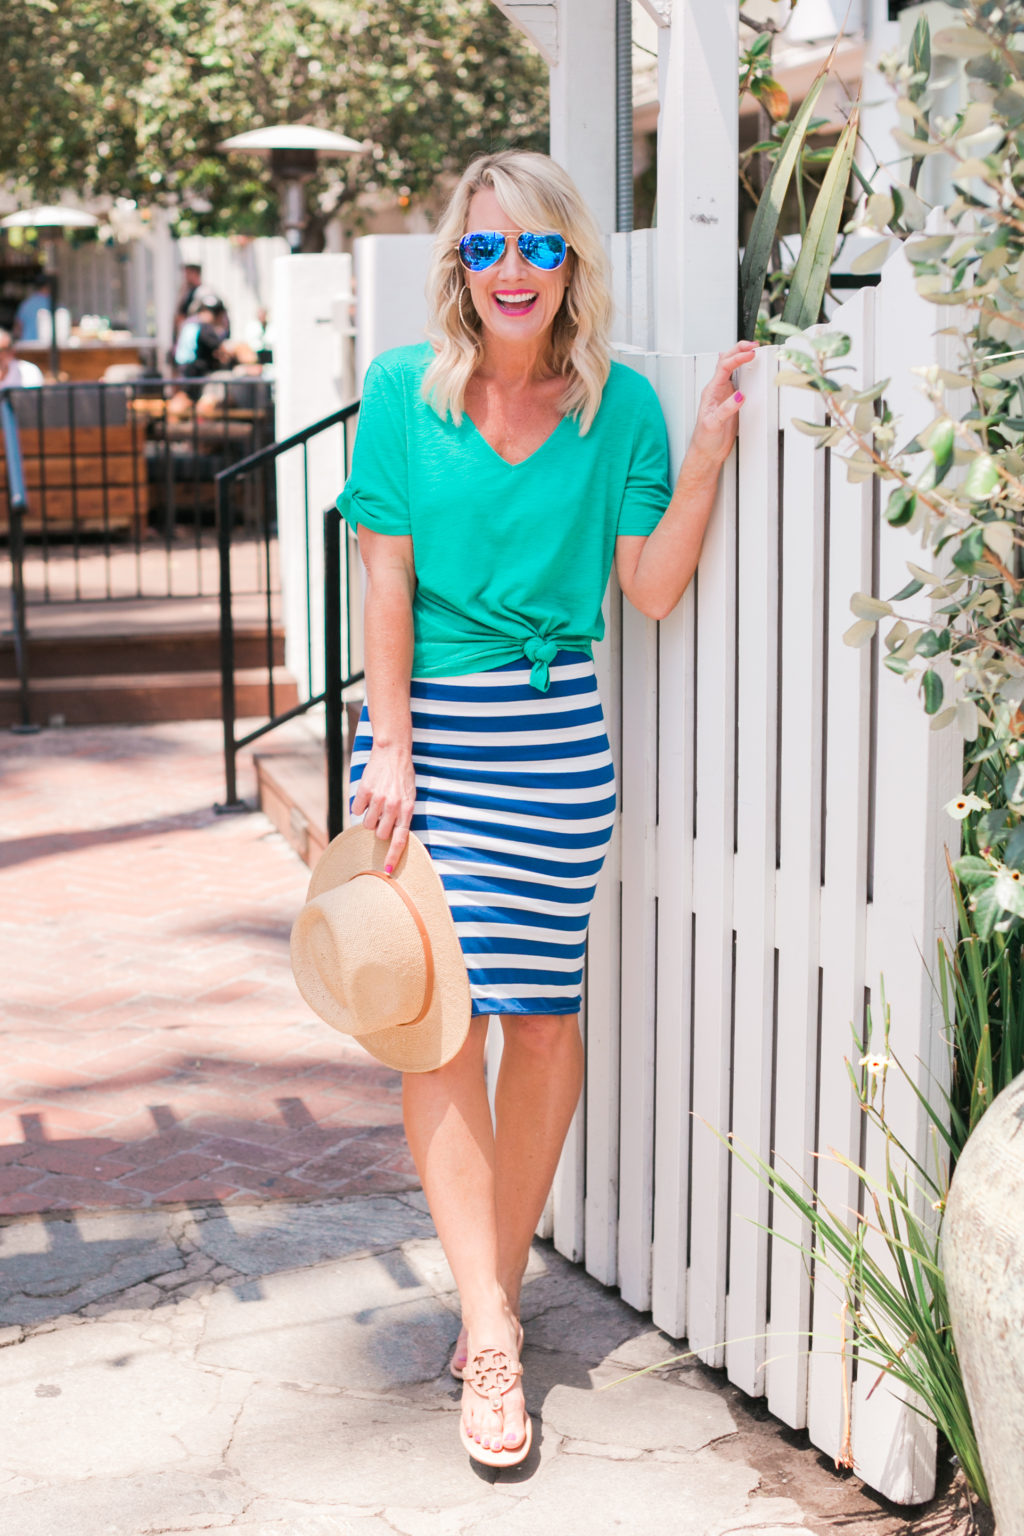 gibson hi sugarplum collection nordstrom anna maria short sleeve detail v neck tee in bold green and fornillo midi skirt in blue stripe